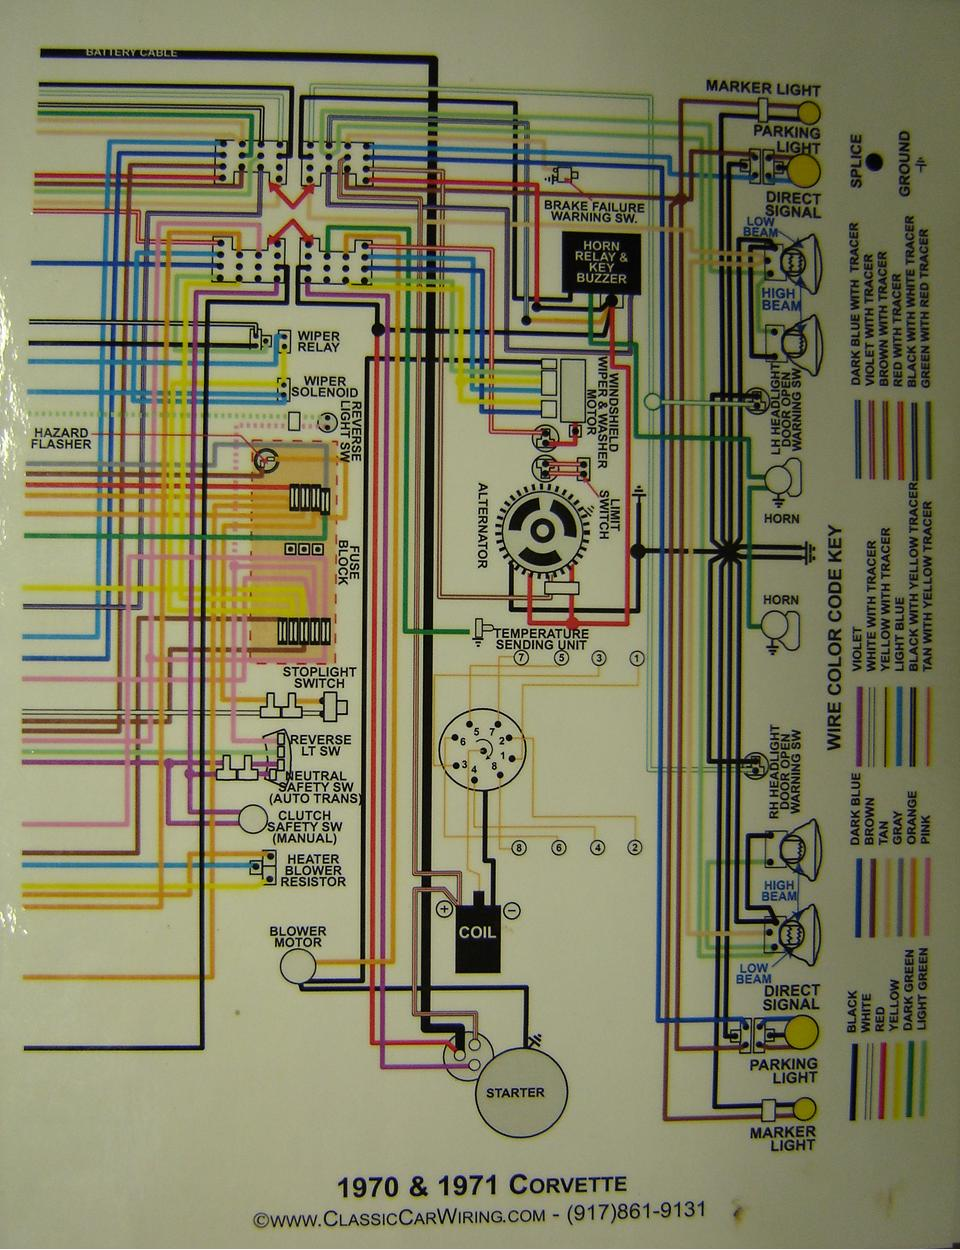 1970 71 corvette color wiring diagram B 1970 chevelle wiring diagram efcaviation com 71 chevelle wiring harness at soozxer.org